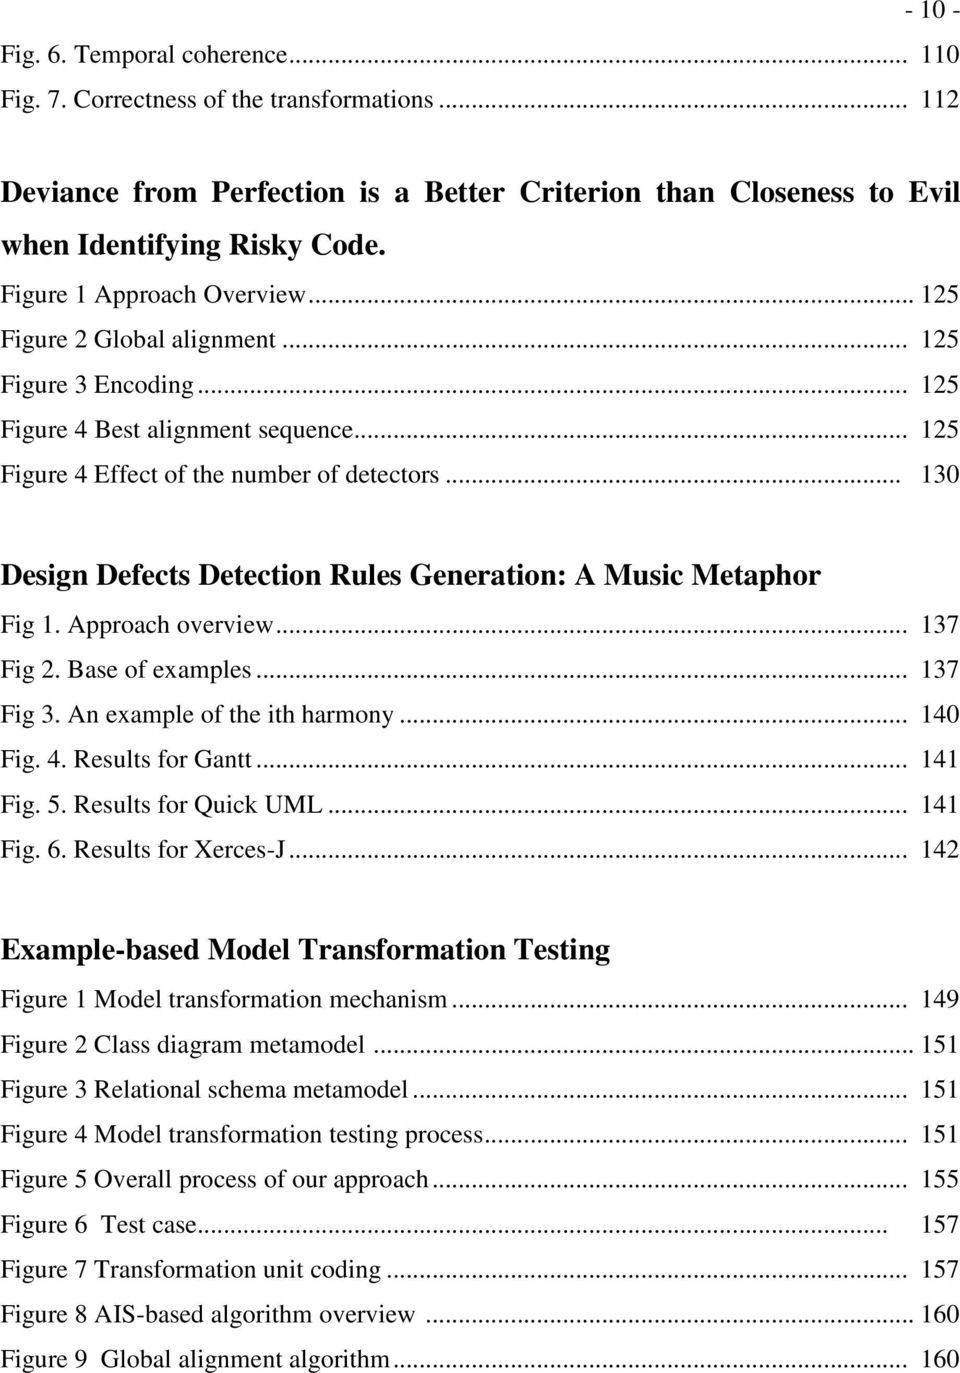 .. 130 Design Defects Detection Rules Generation: A Music Metaphor Fig 1. Approach overview... 137 Fig 2. Base of examples... 137 Fig 3. An example of the ith harmony... 140 Fig. 4. Results for Gantt.